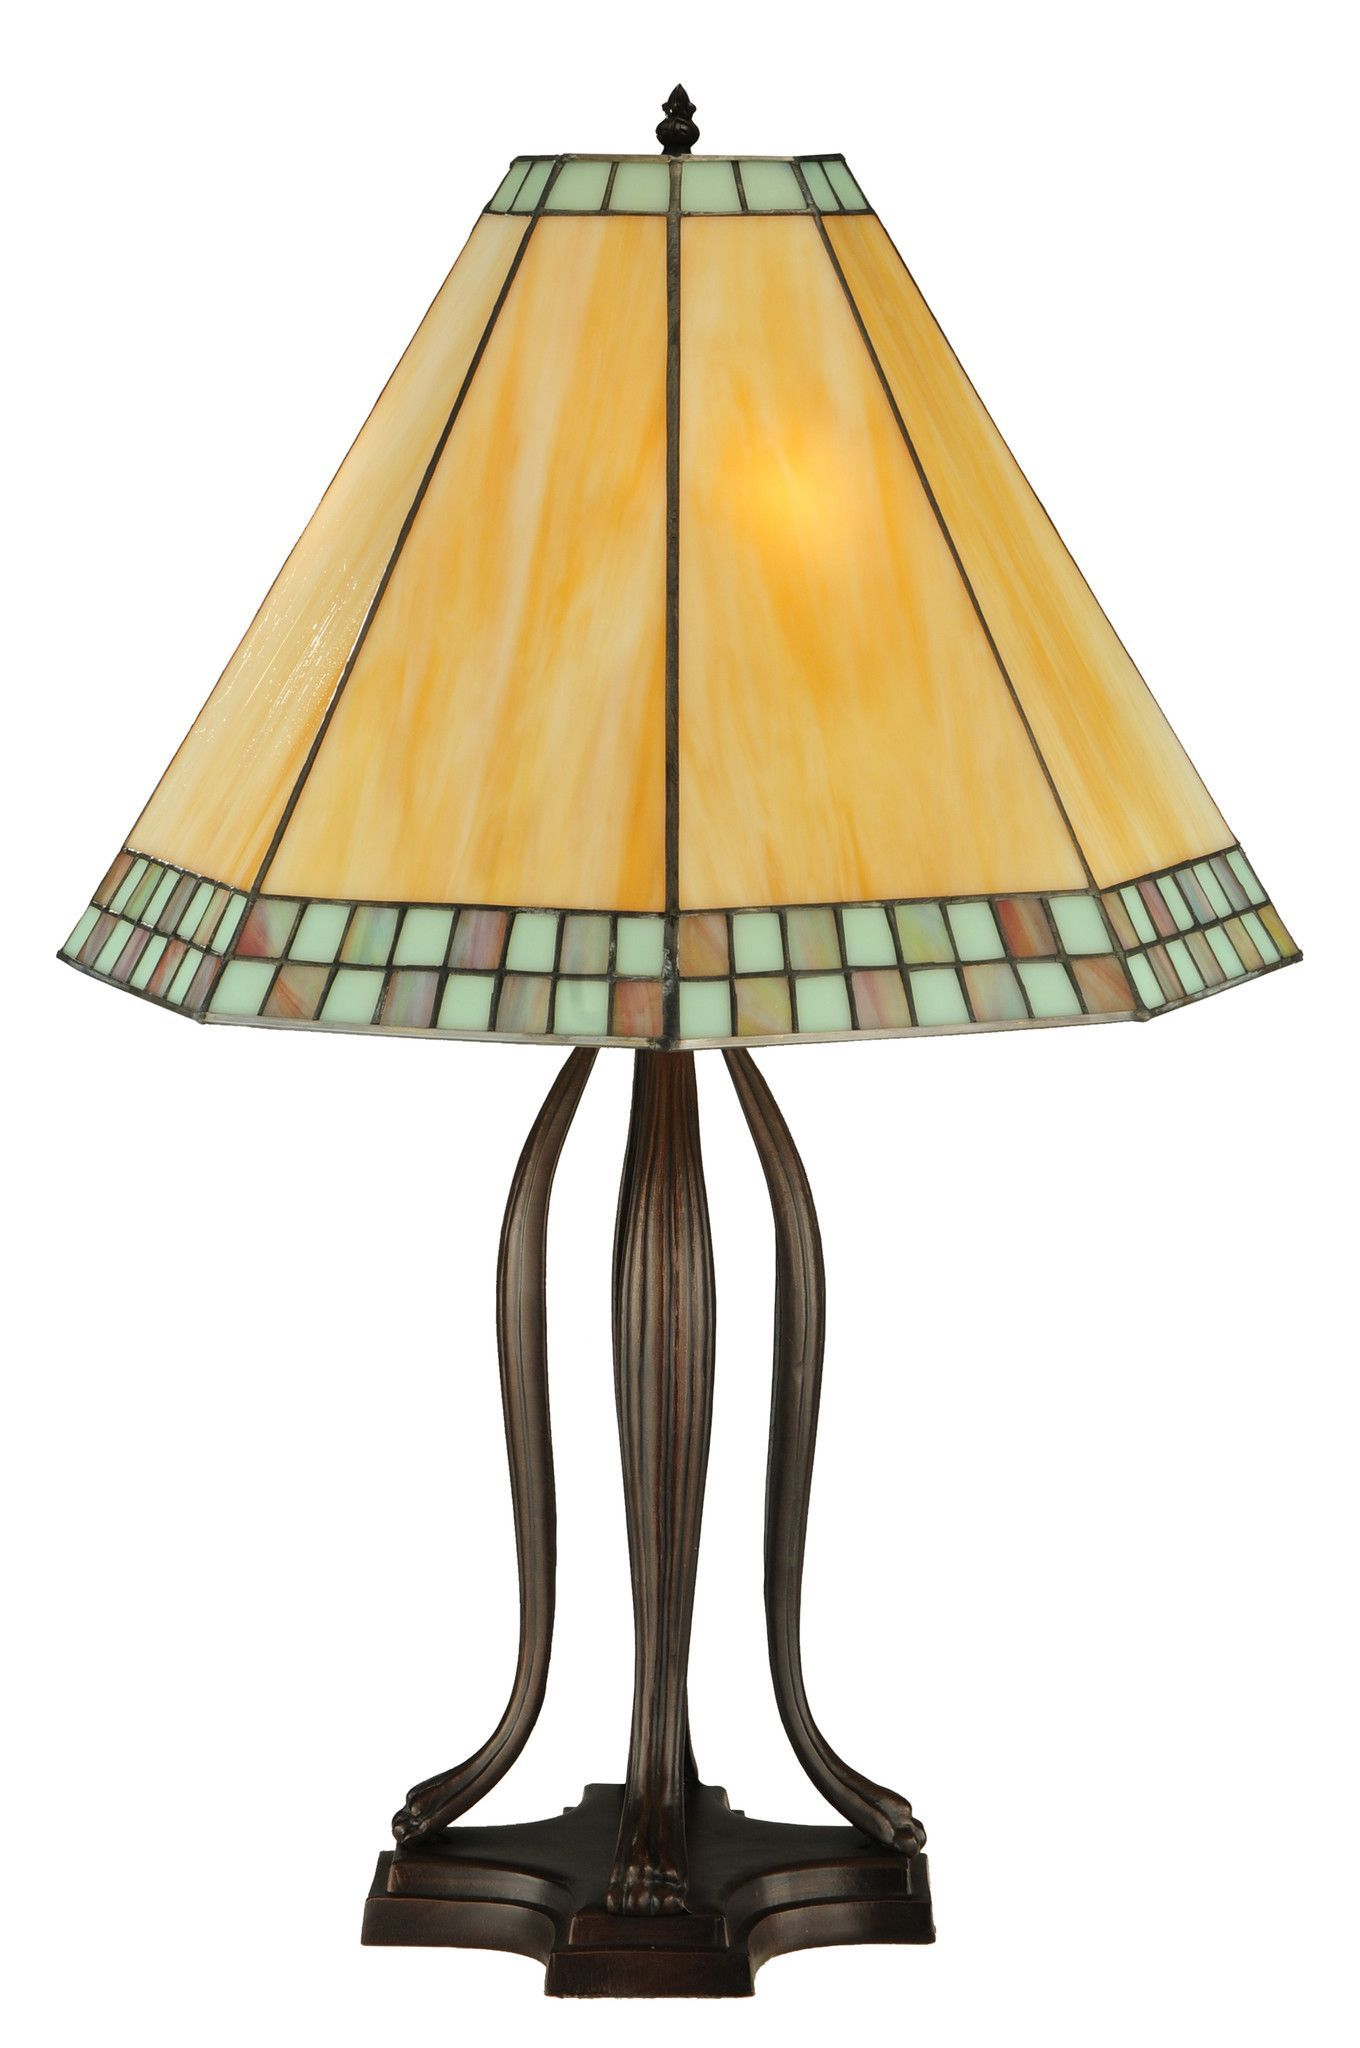 305h checkerboard tiffany mission table lamp checkerboard beautiful checkerboard tiffany mission table lamp shade beige bordered in green blue seafoam mahogany bronze finished base custom options ships free geotapseo Choice Image